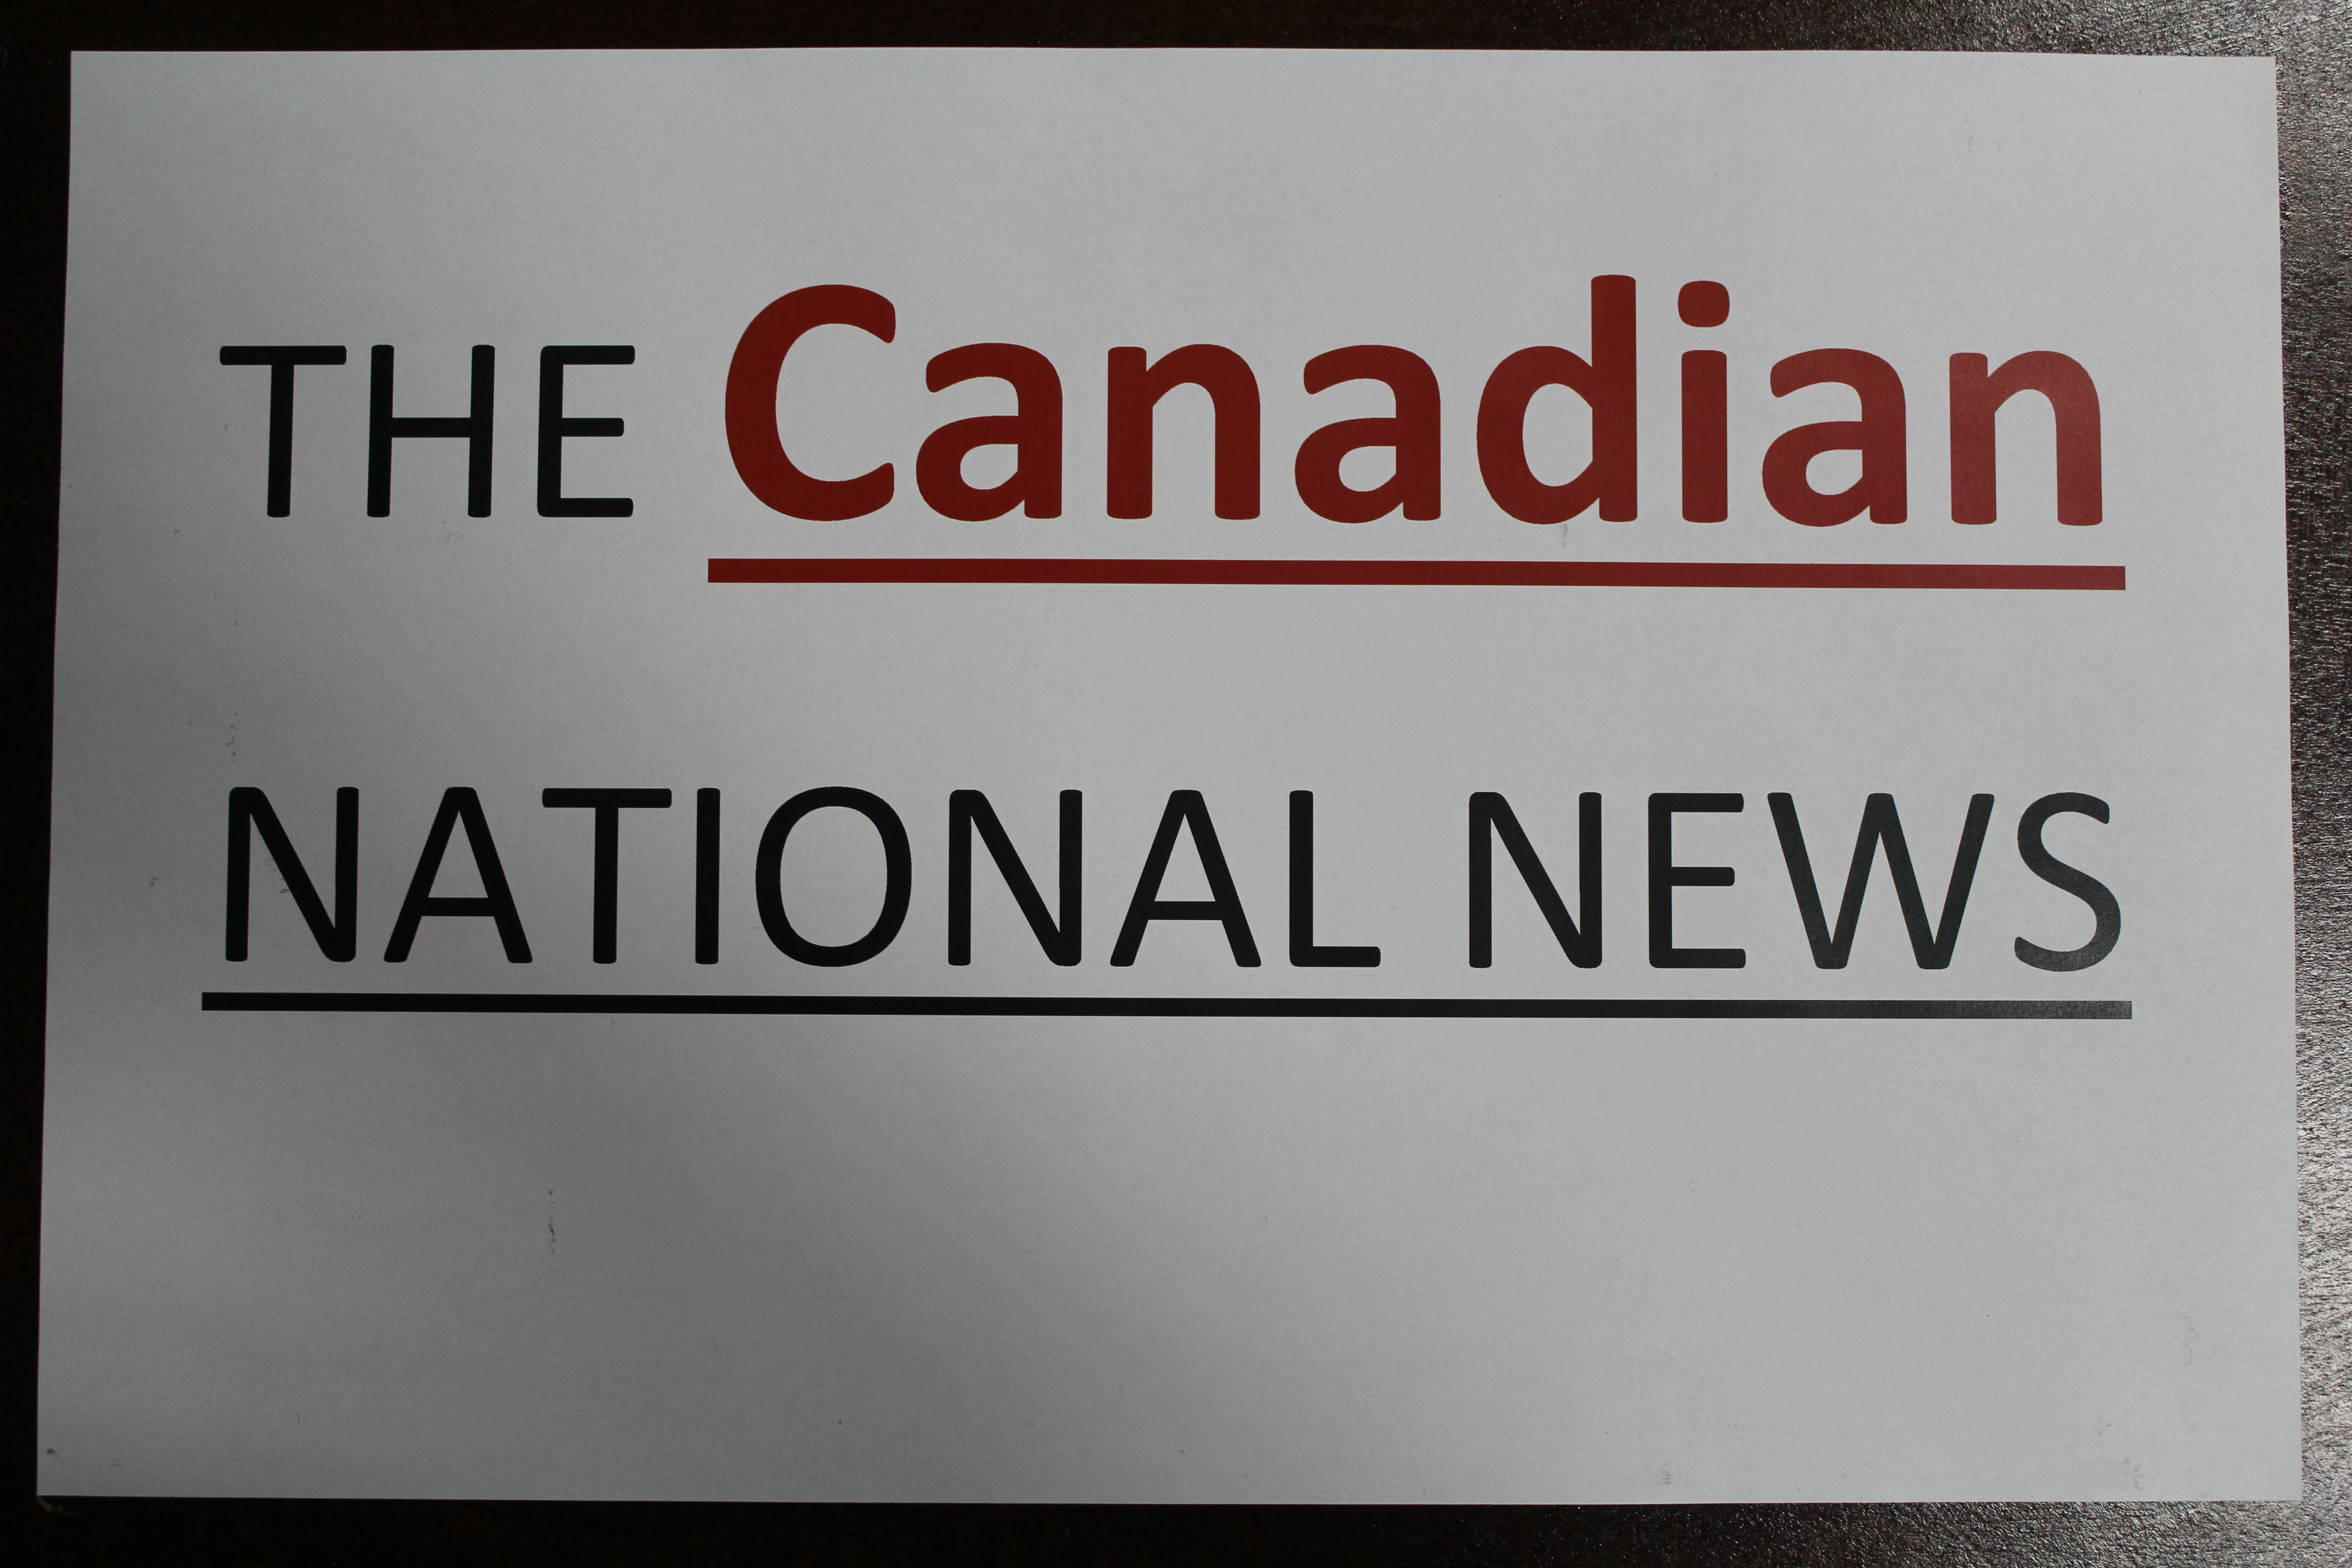 The Canadian National News